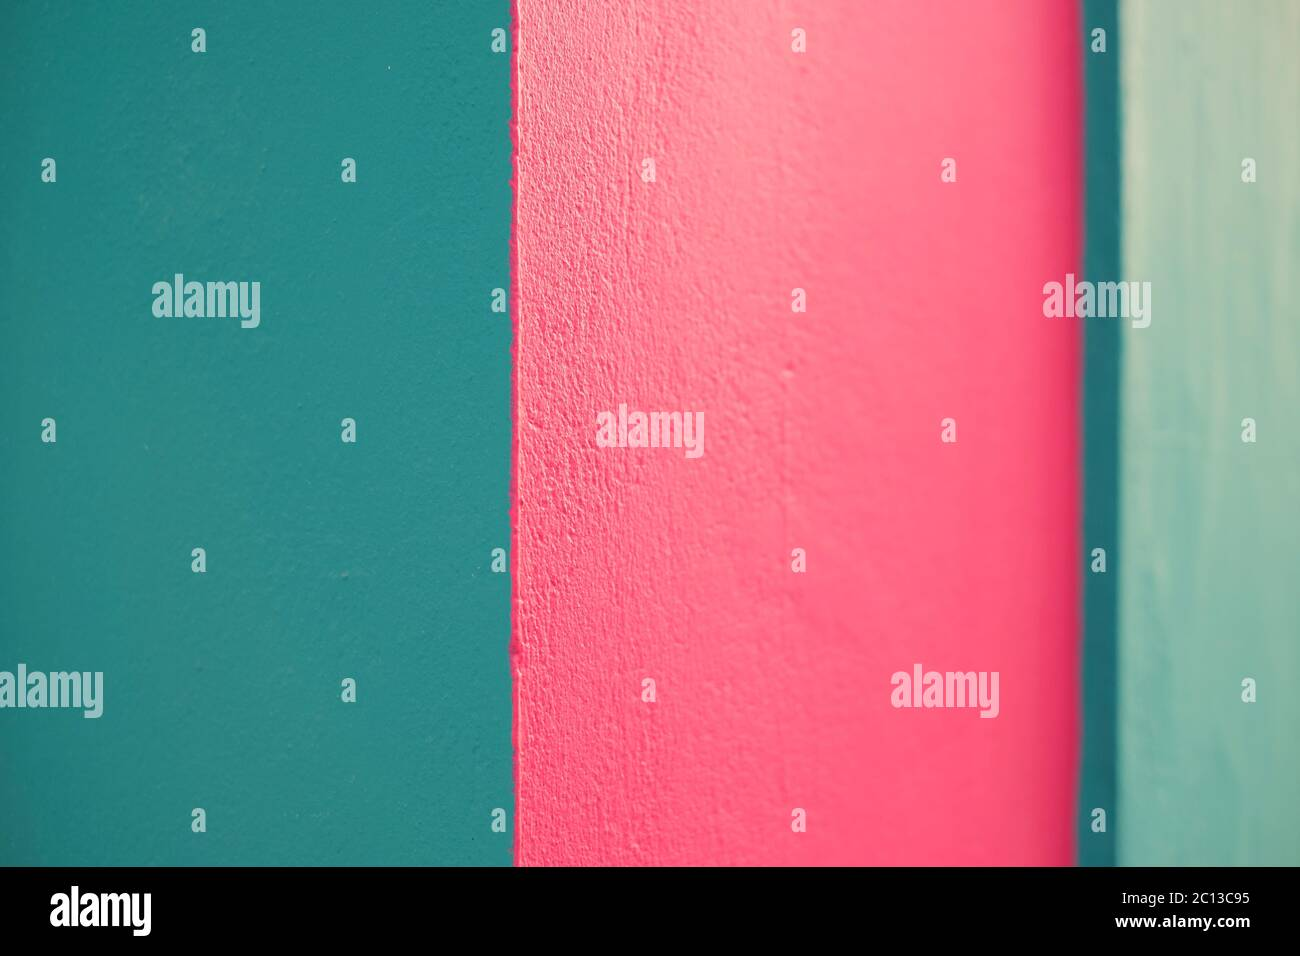 subdued color high resolution stock photography and images alamy alamy